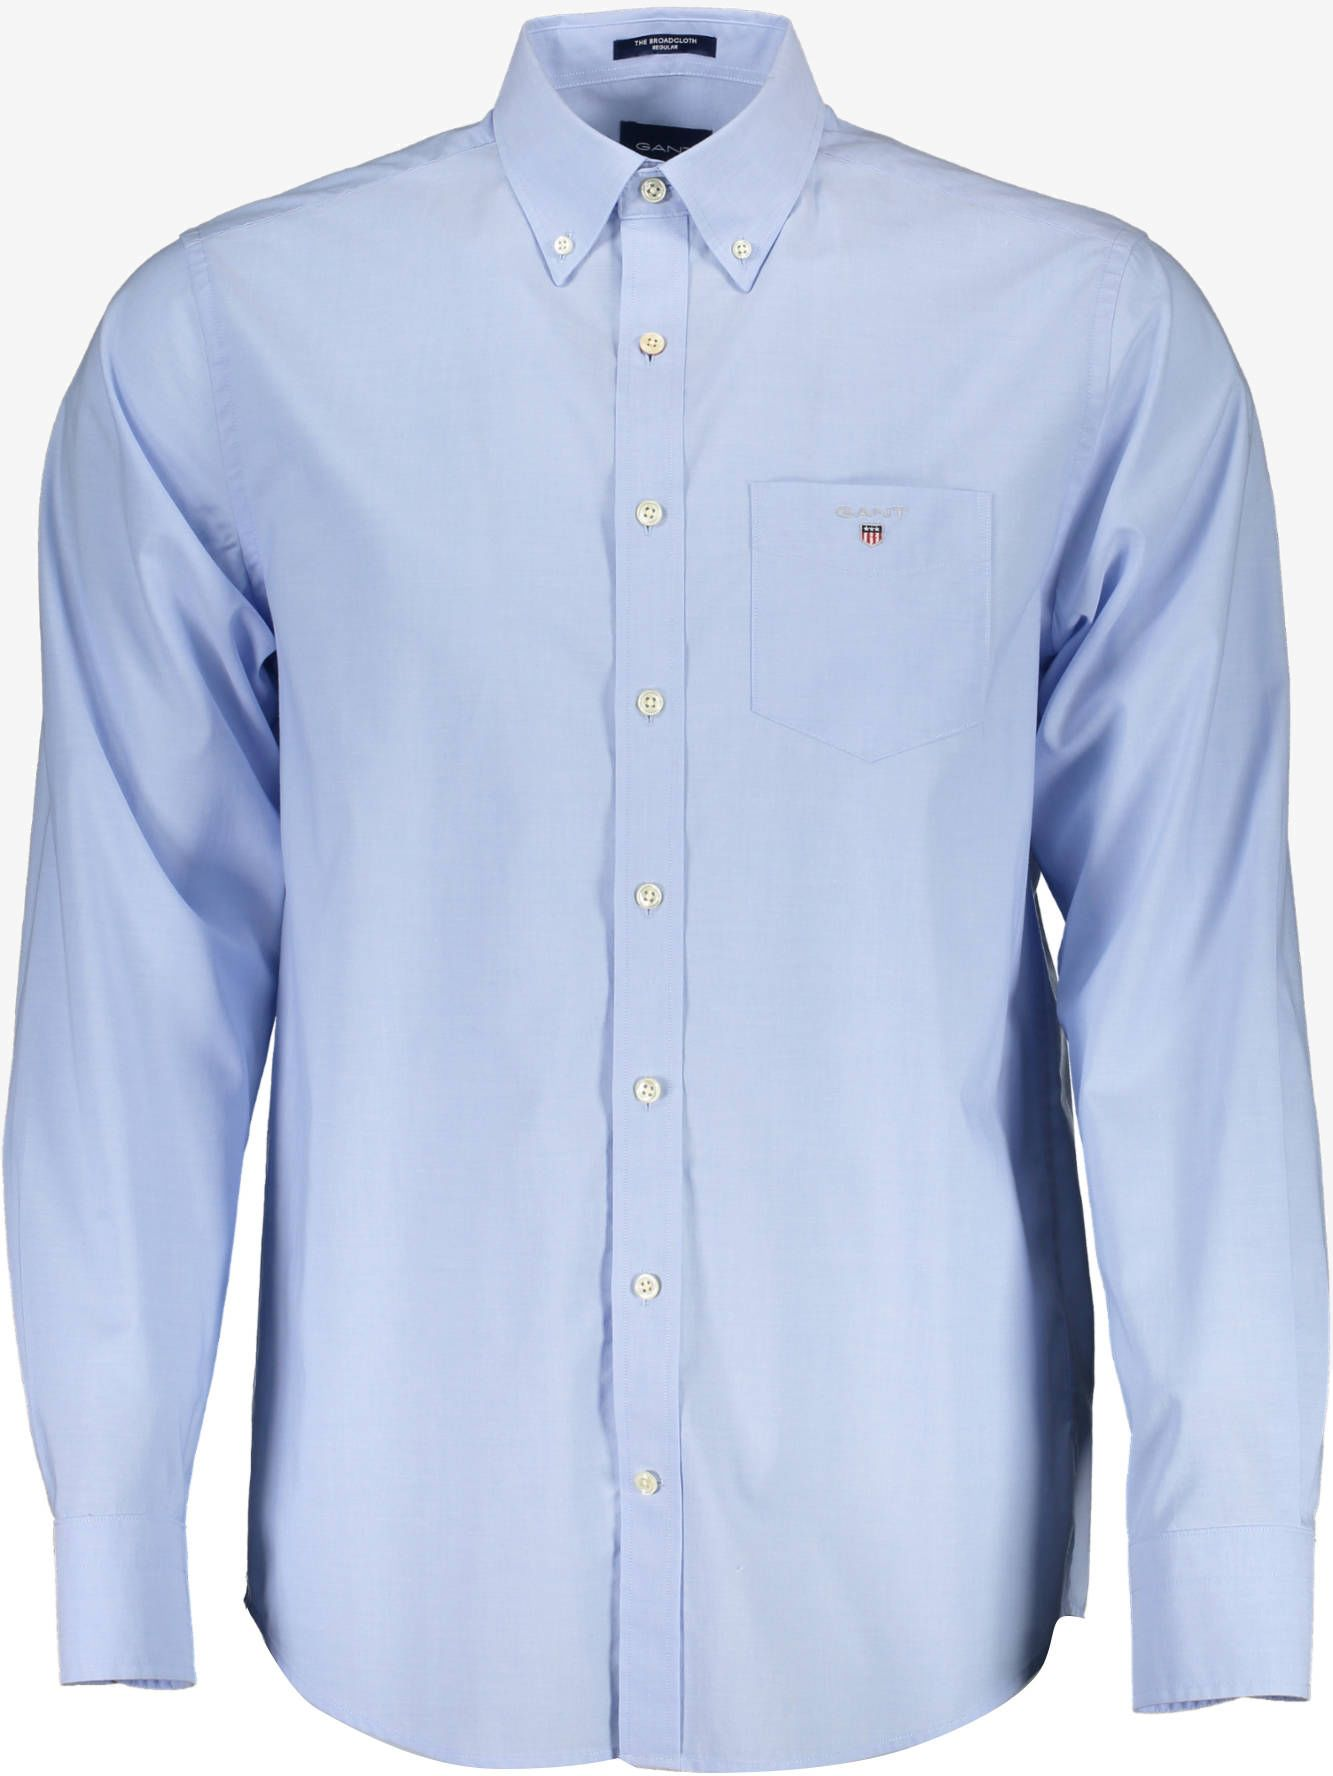 GANT Shirt Long Sleeves Men